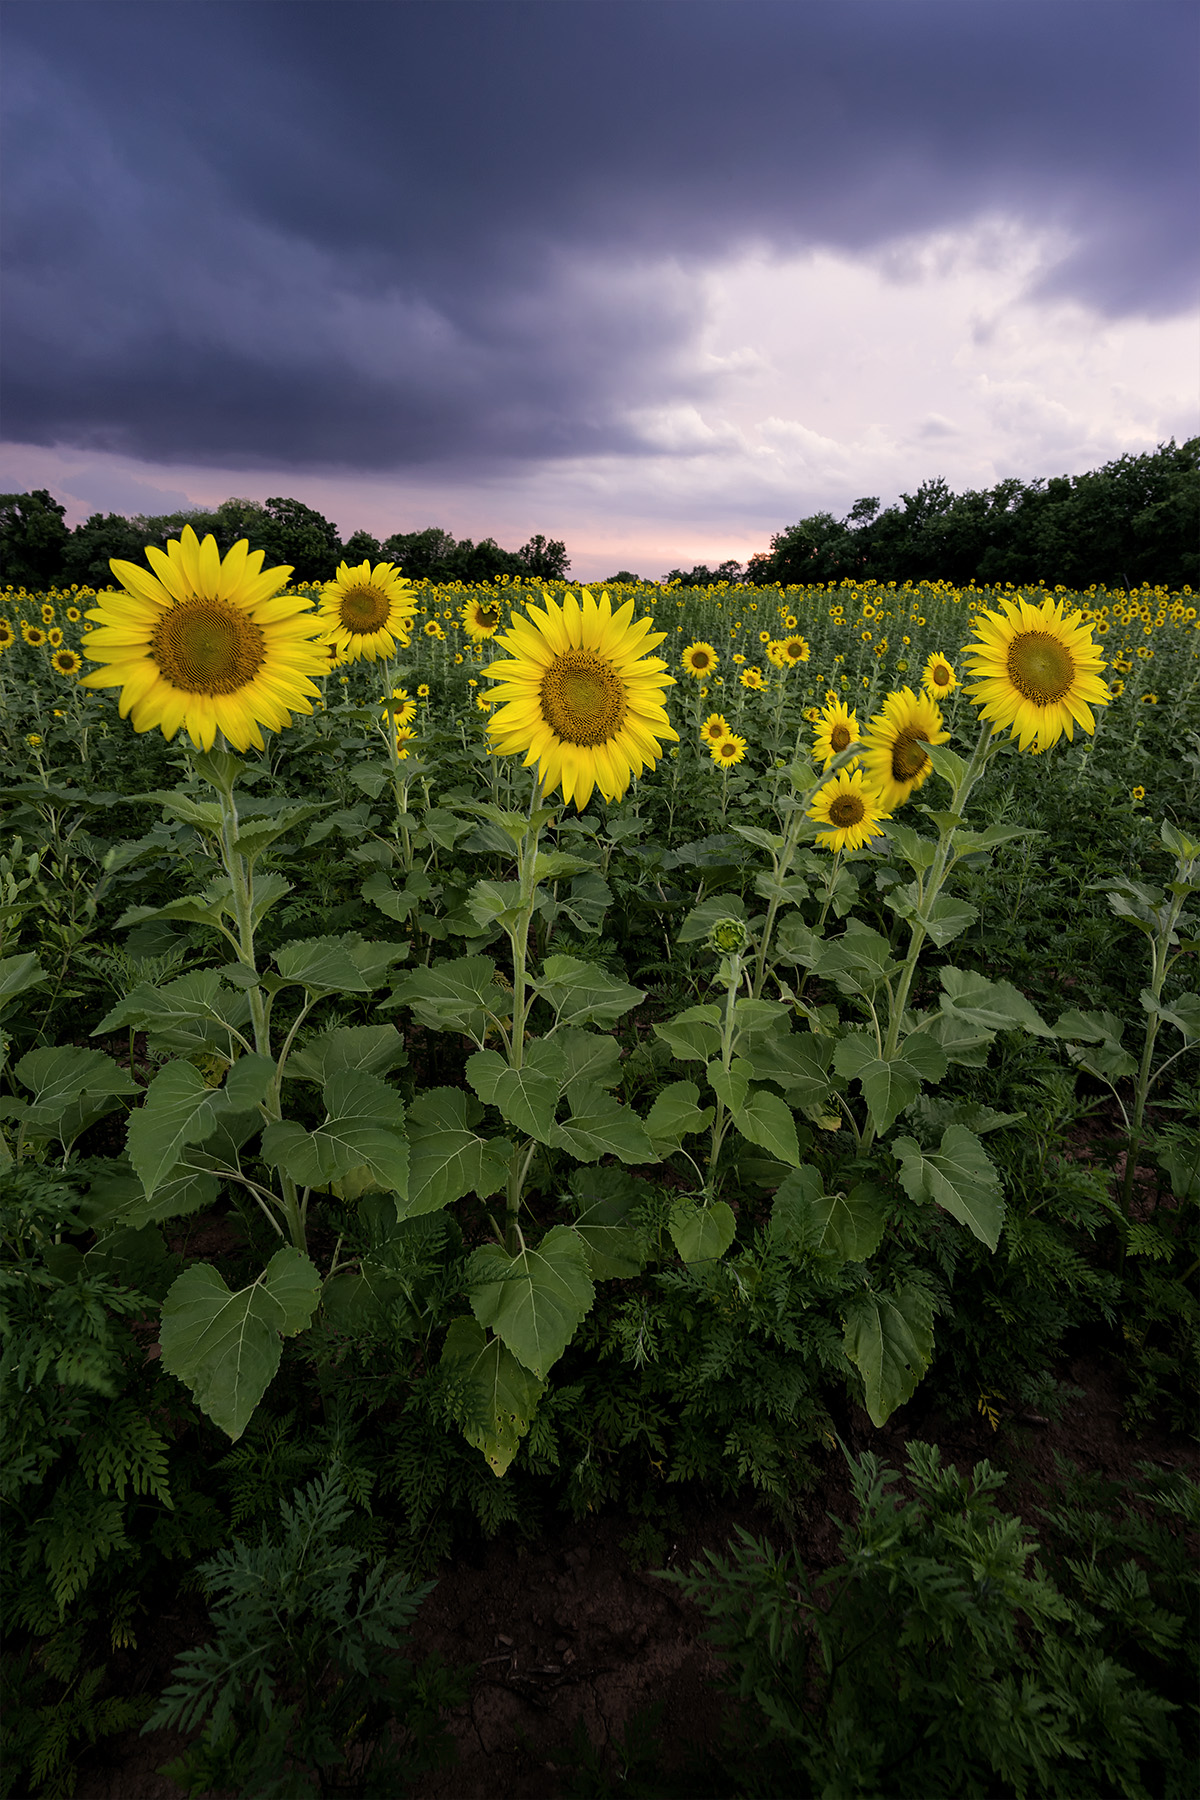 sunflower, sunflower fields, sunflower seeds, maryland, ms, mckee beshers, yellow, sunset, poolesville, summer, clouds, storm